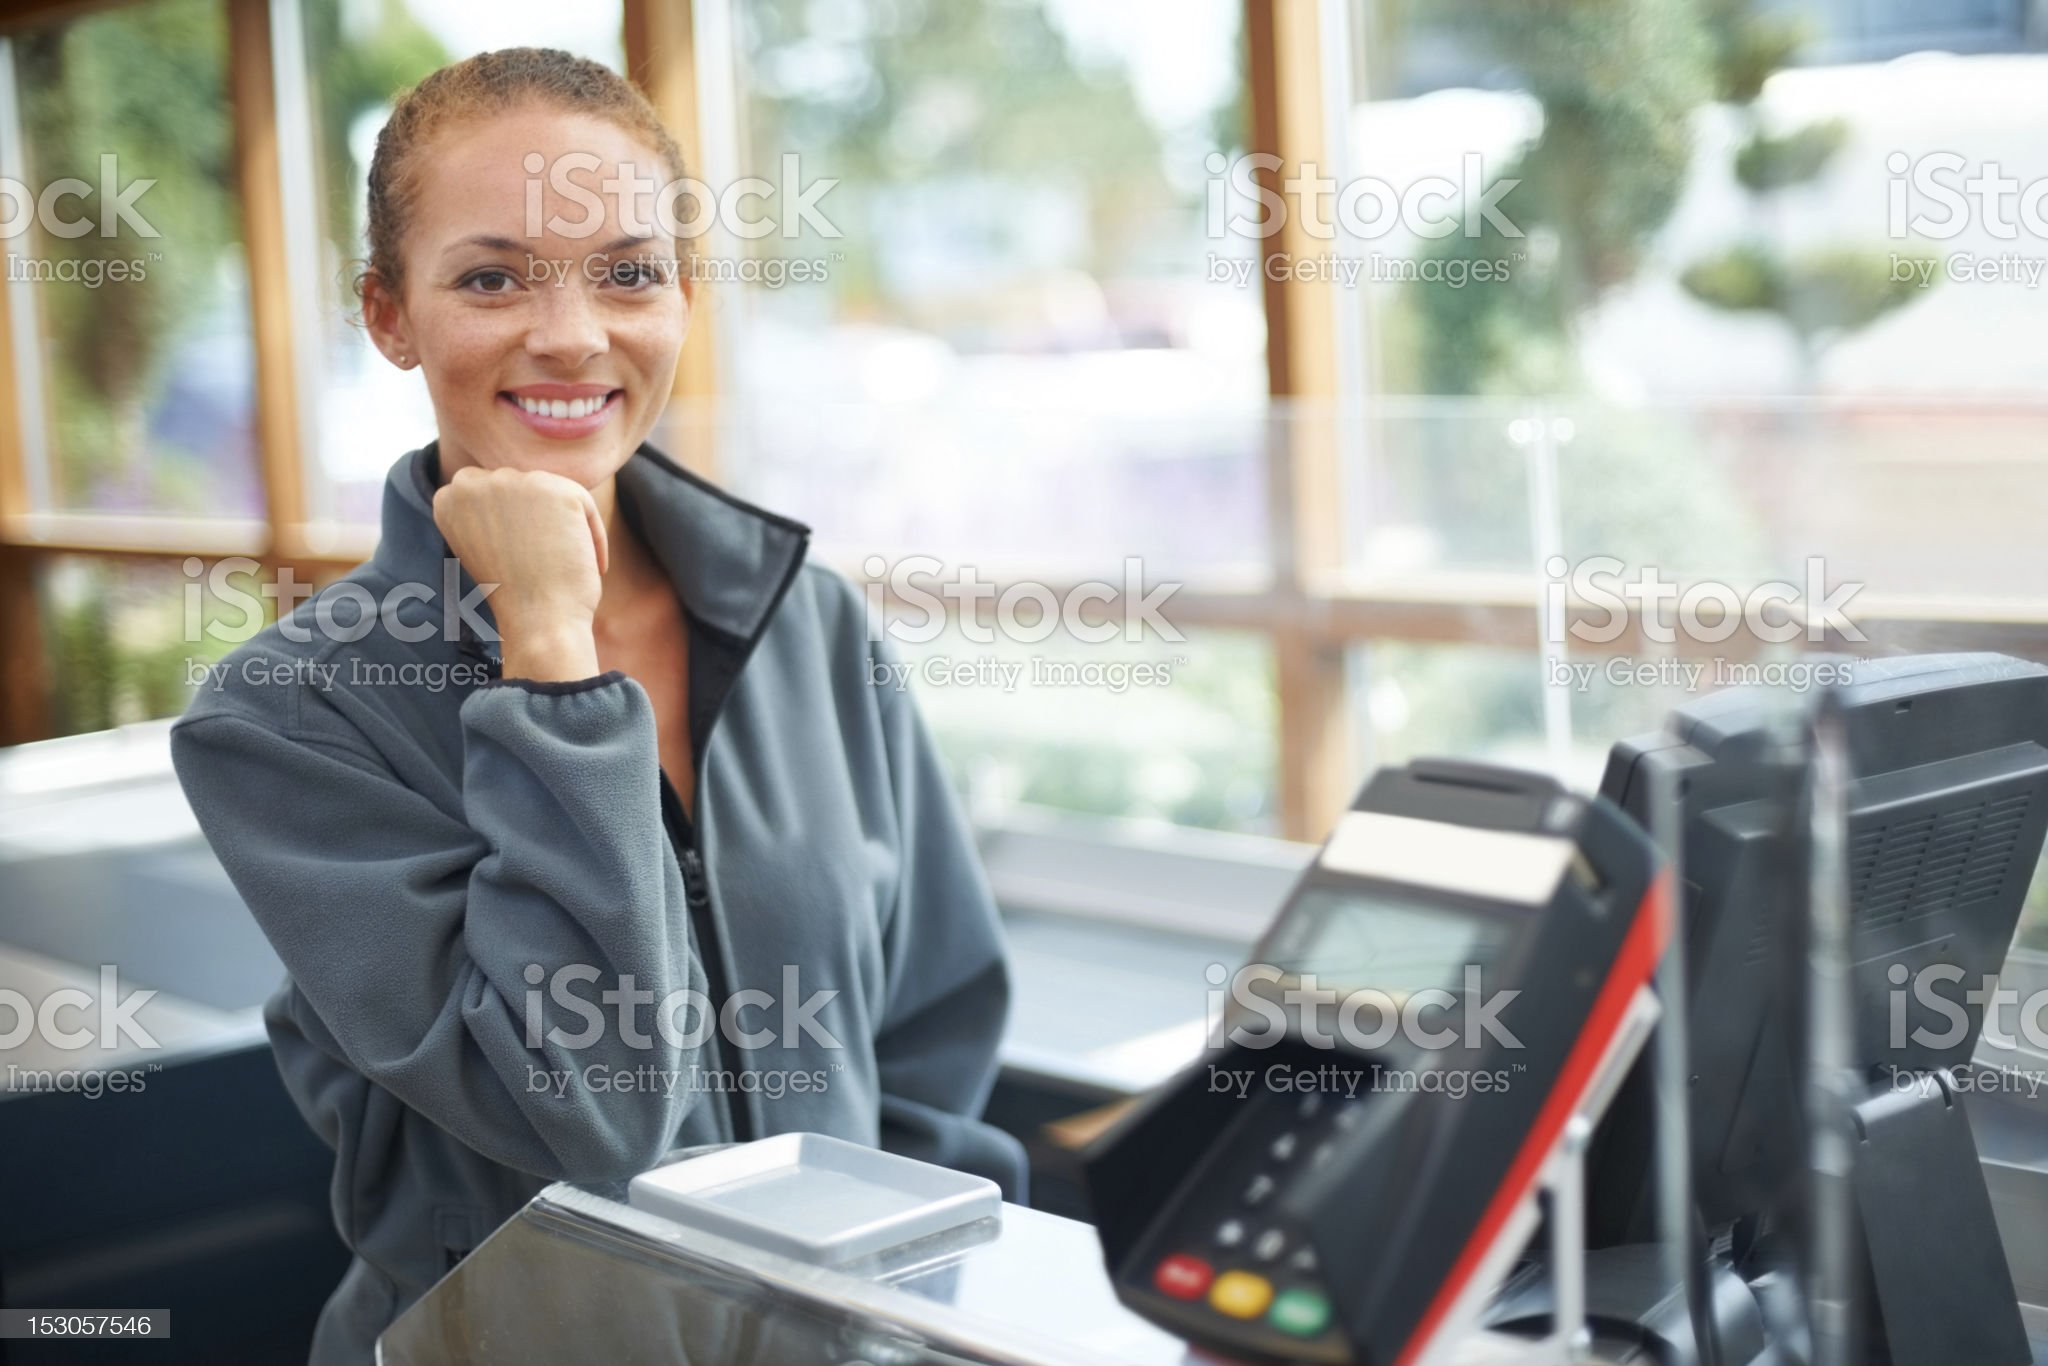 Walk in to a smiling face royalty-free stock photo